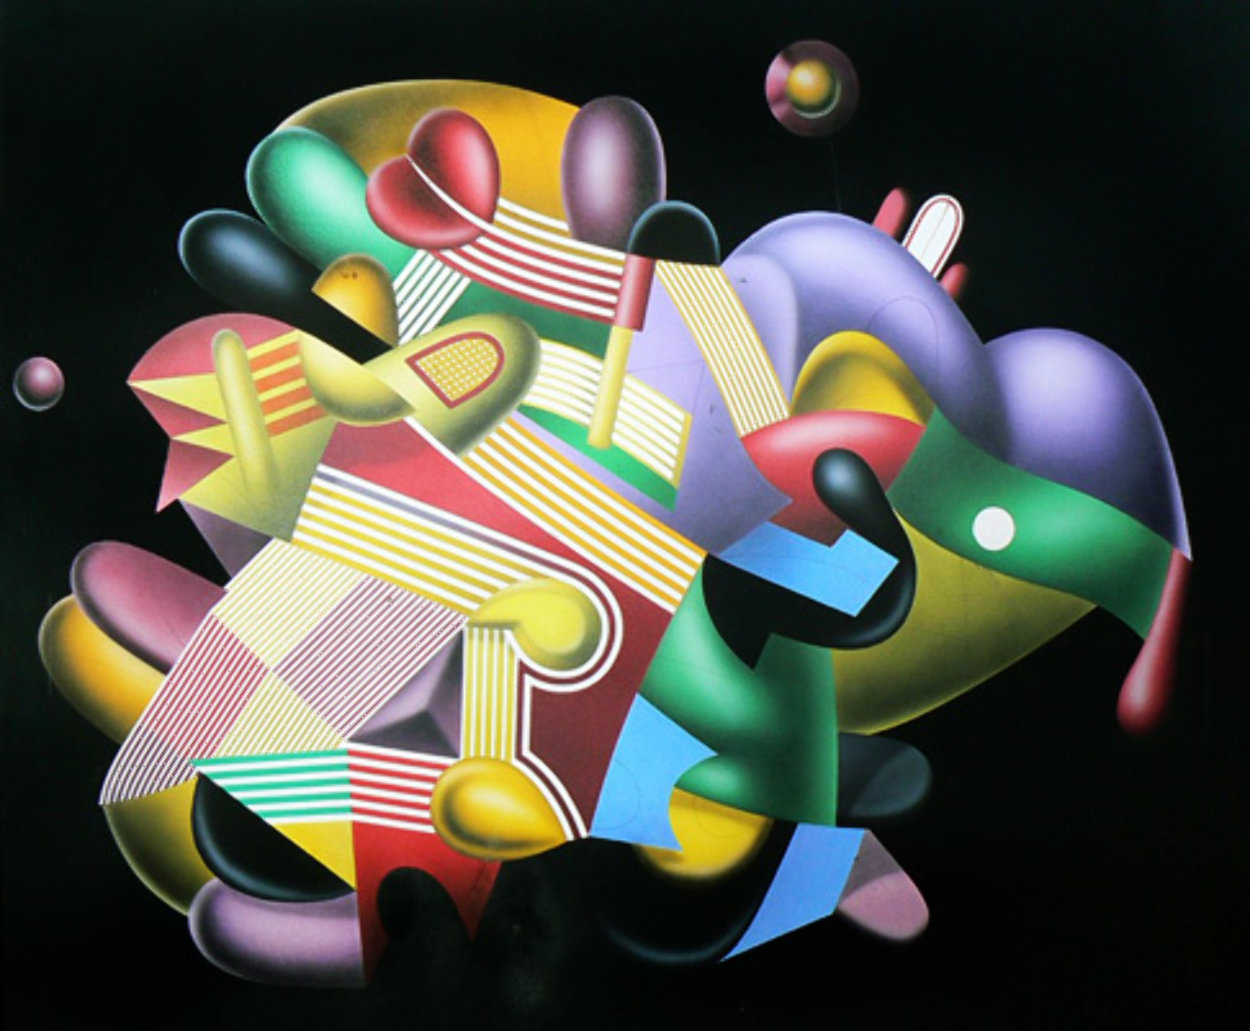 Candy Store 38x46 Super Huge Original Painting by Yankel Ginzburg